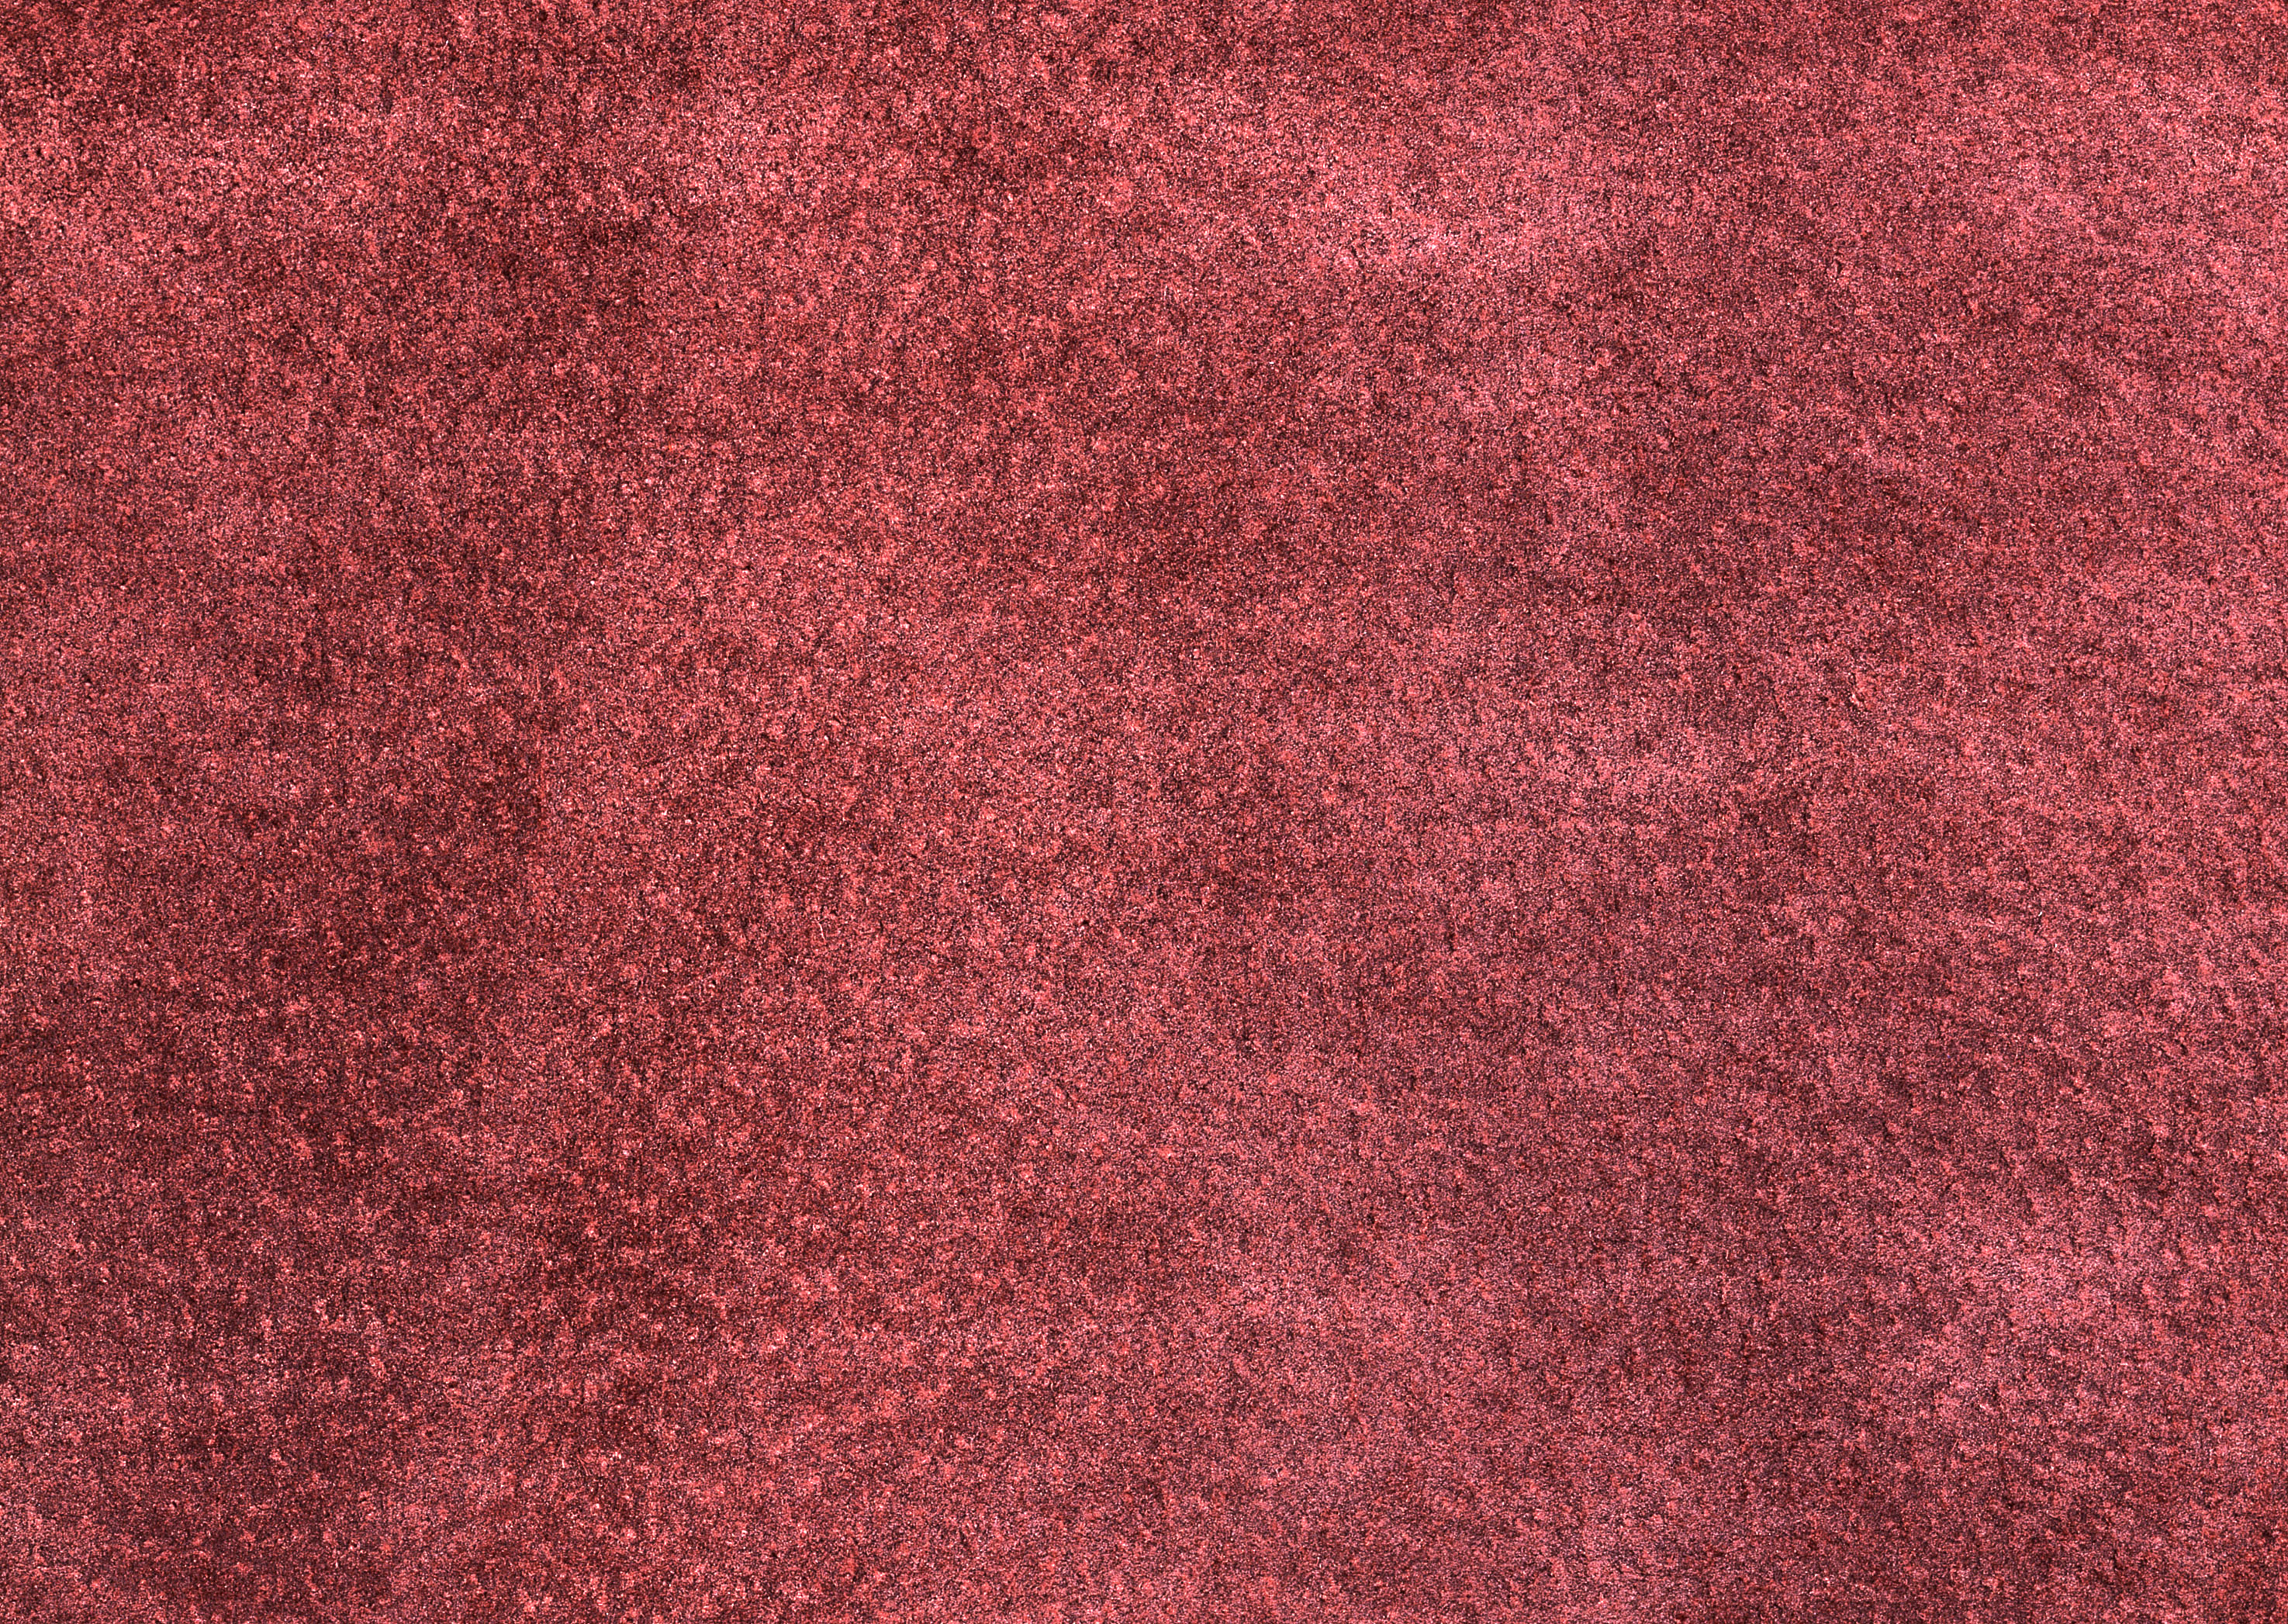 Pink leather big textures background image, free picture leather download